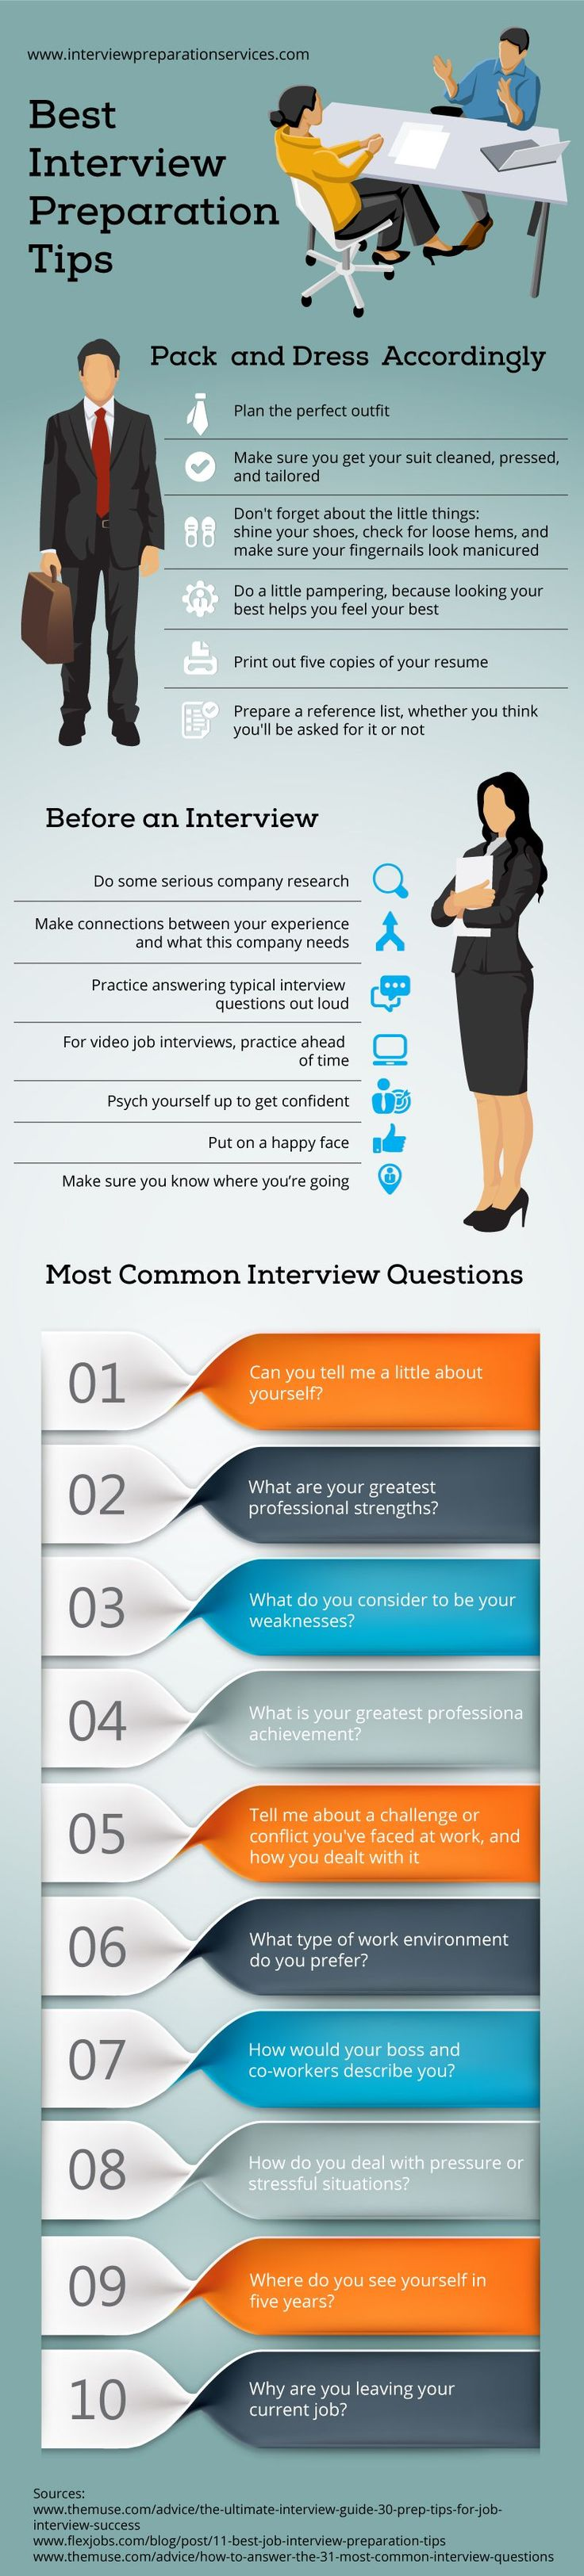 17 best ideas about job interview preparation job all in one place the best job interview preparation tips infographic the